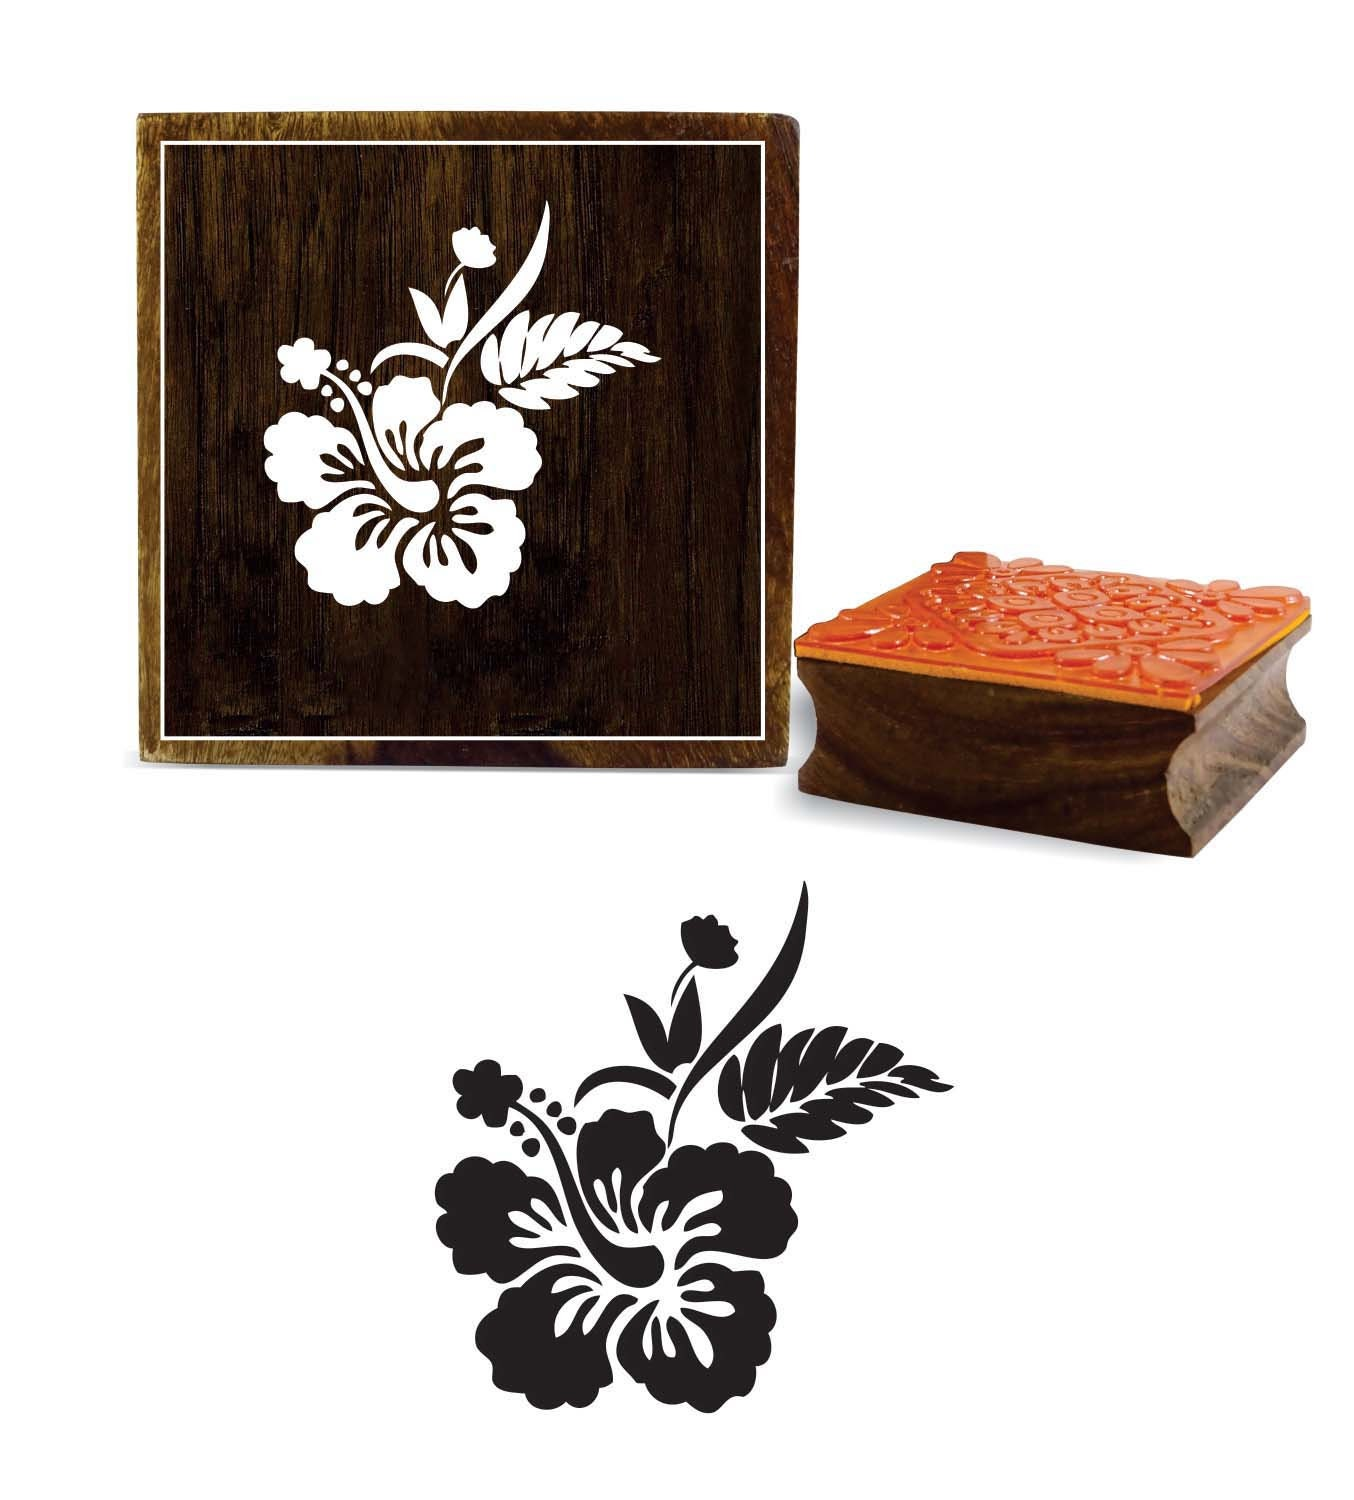 edde082d43 Antique Square Floral Pattern Craft Textile Stamp, Diy Printing Wooden  Rubber Stamp, Scrap-Book Decorative Wood Art Craft By 1 Pc, PRB-434